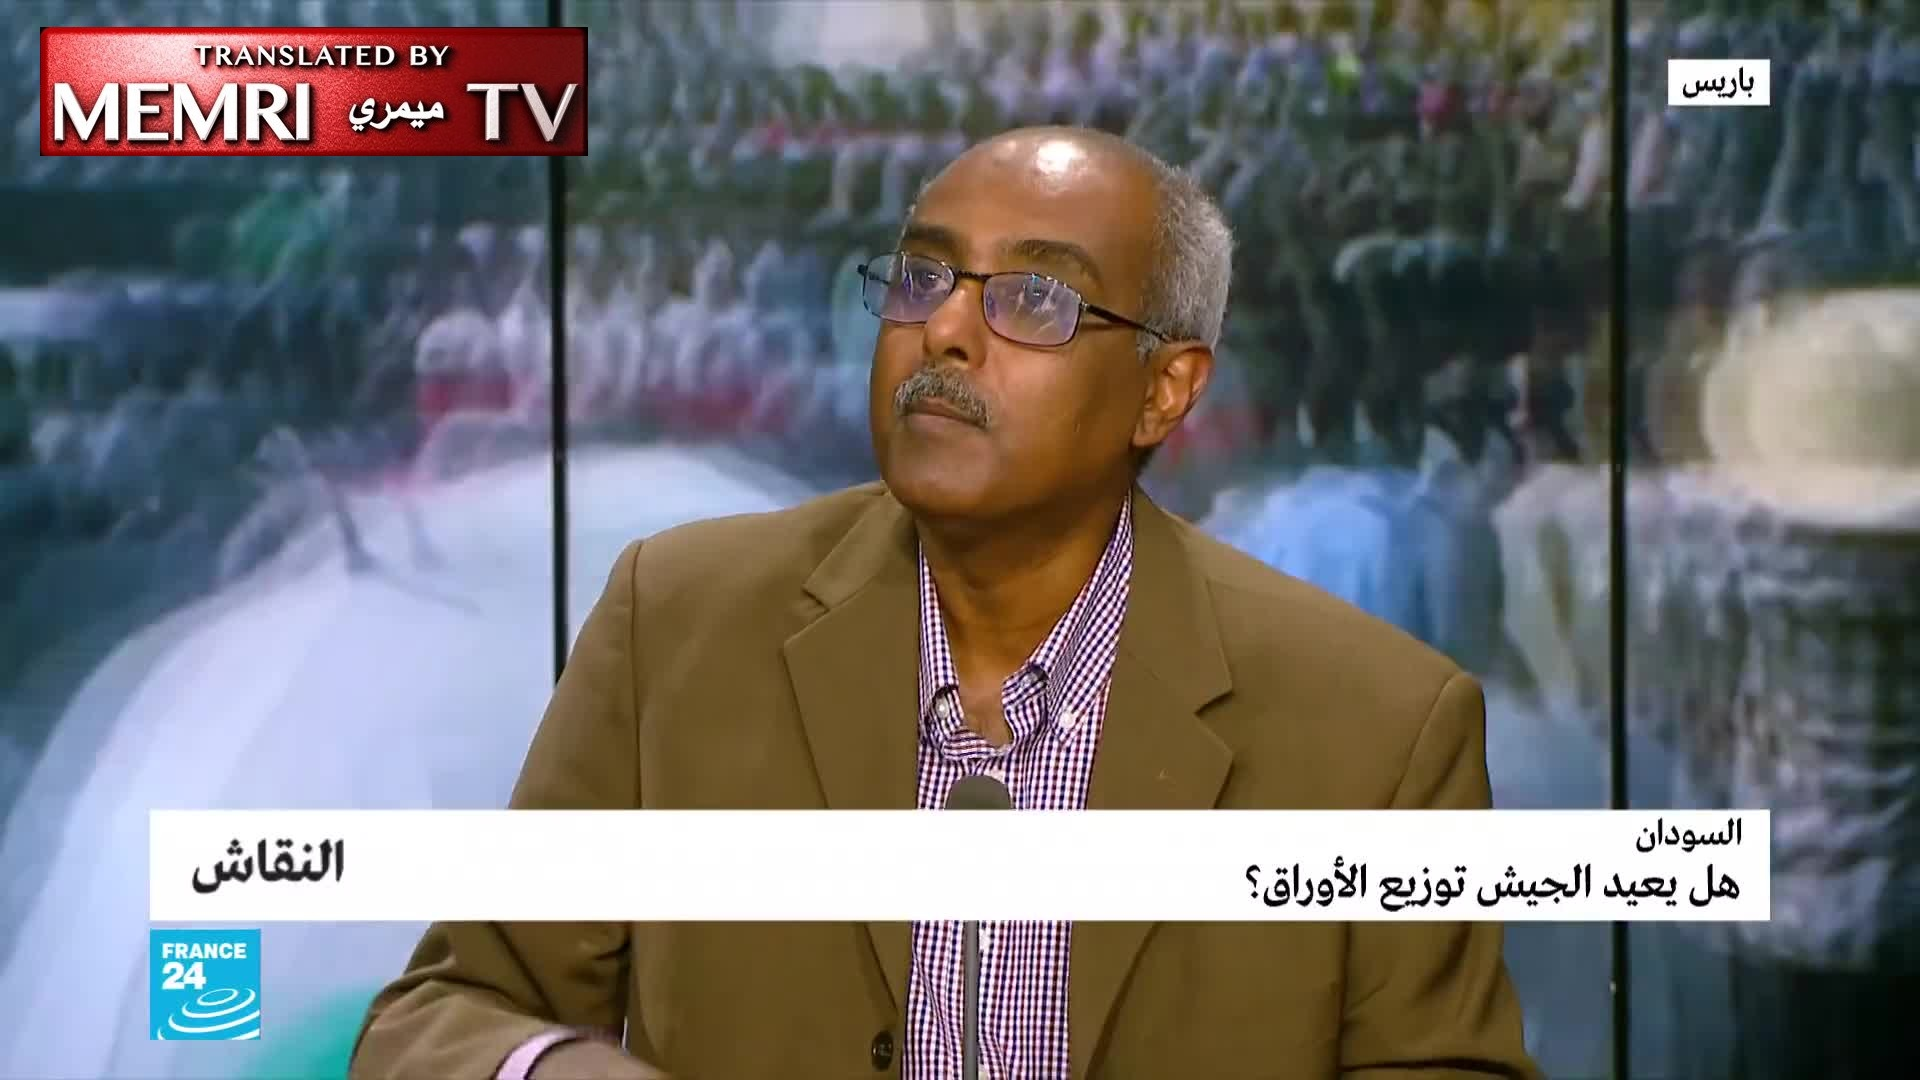 Sudanese Journalist Rachid Said Yacoub: We Are Fighting against the Muslim Brotherhood, and Seeking to Establish a State Based on Citizenship